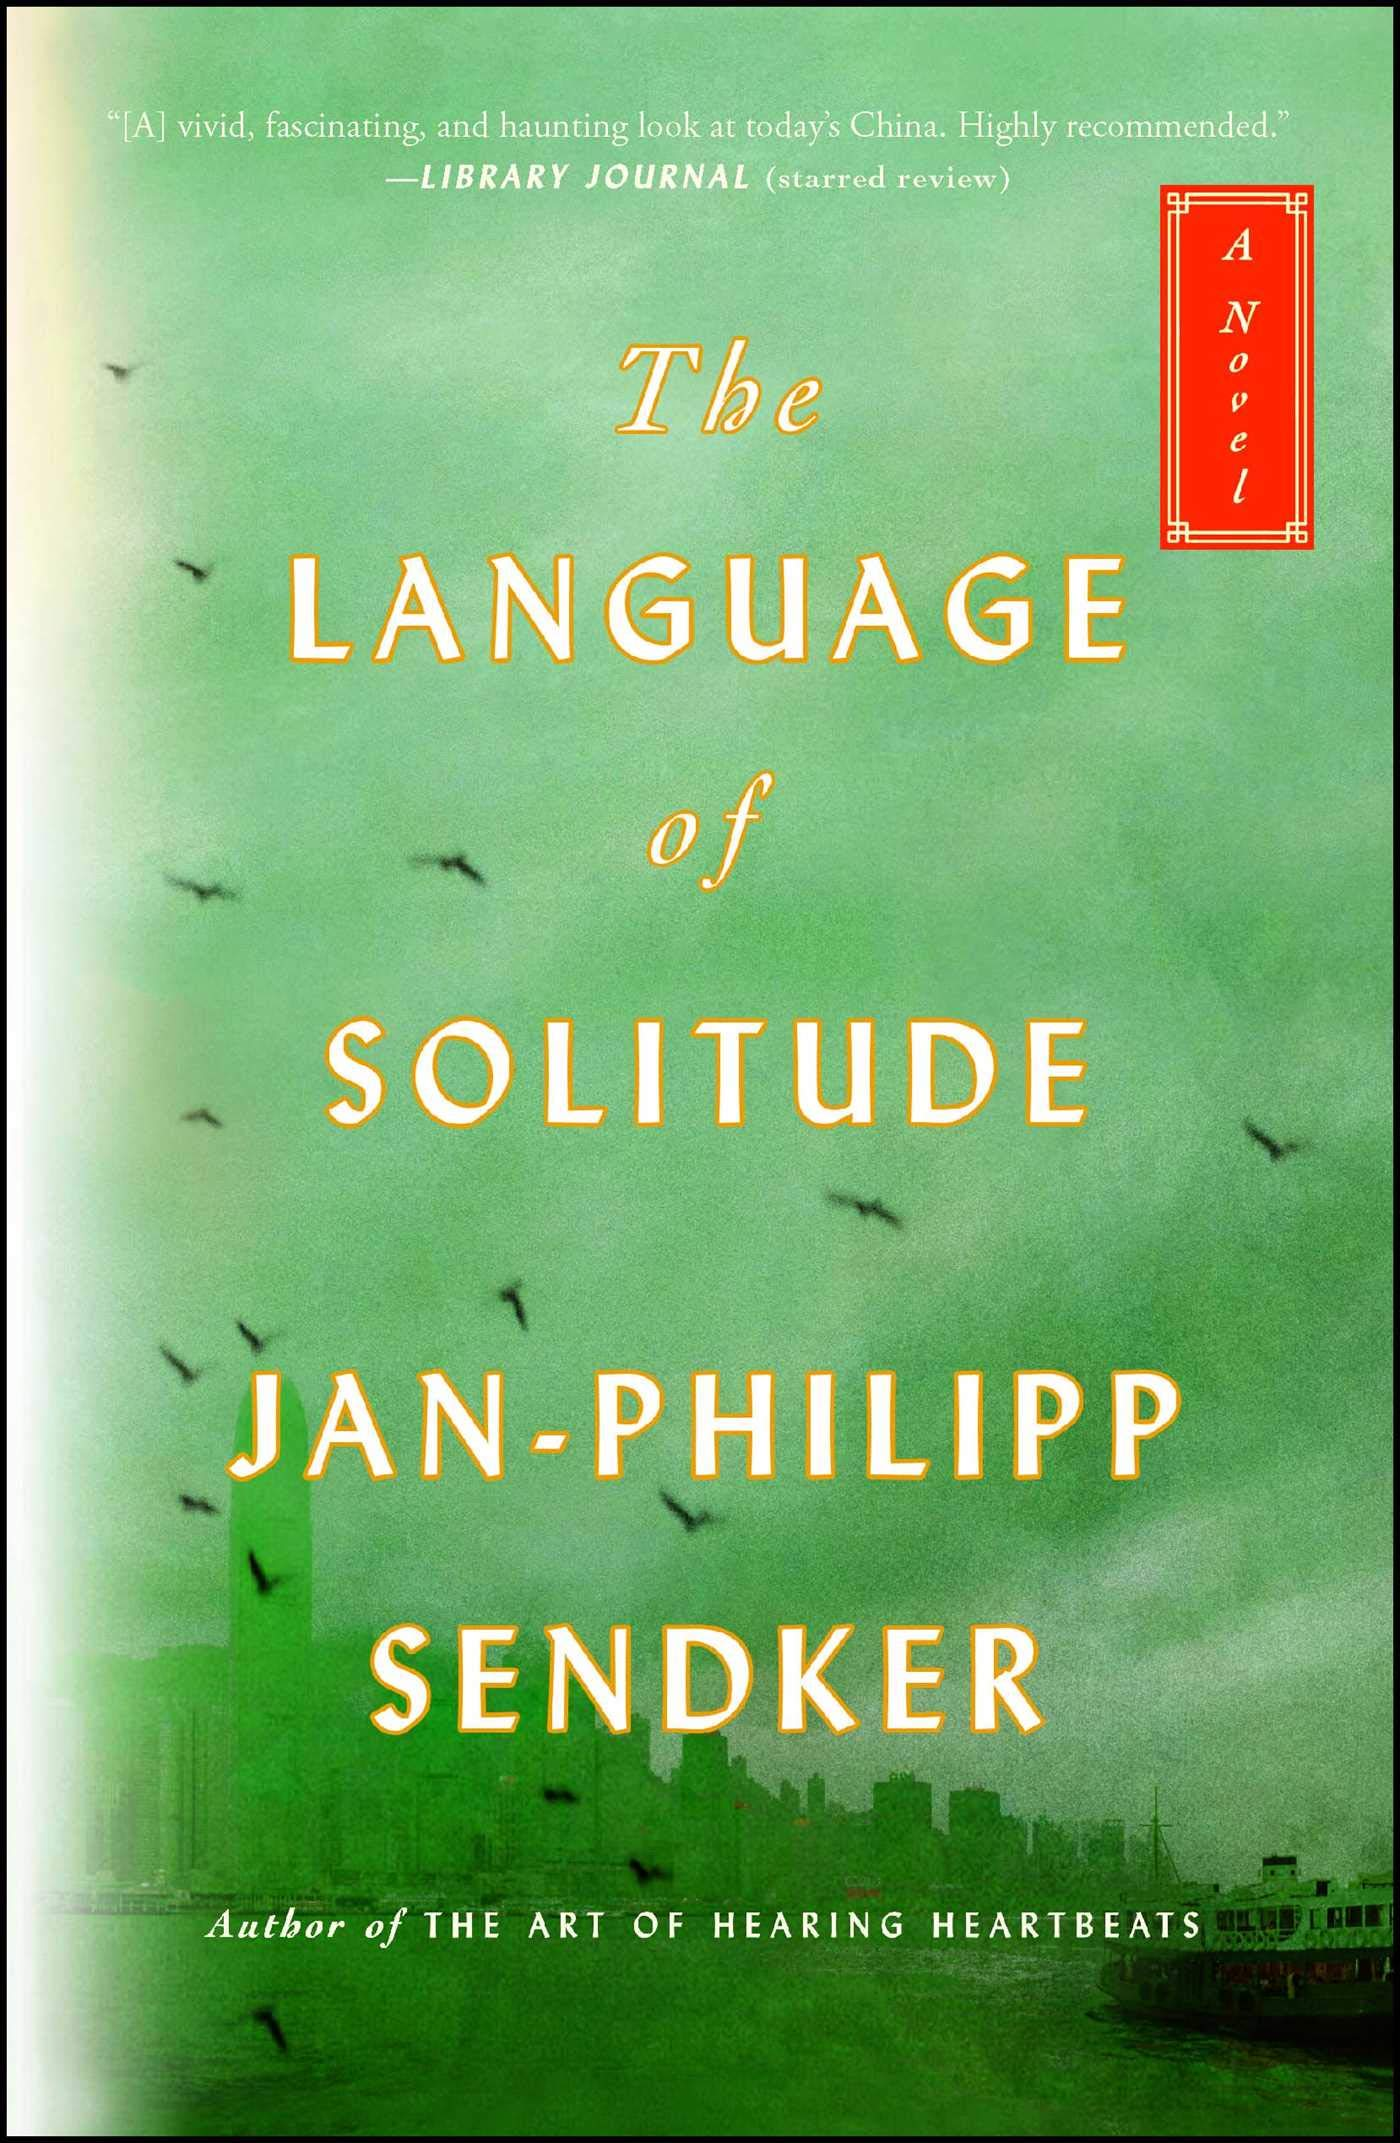 The Language of Solitude: A Novel (The Rising Dragon Series) by Atria / 37 INK